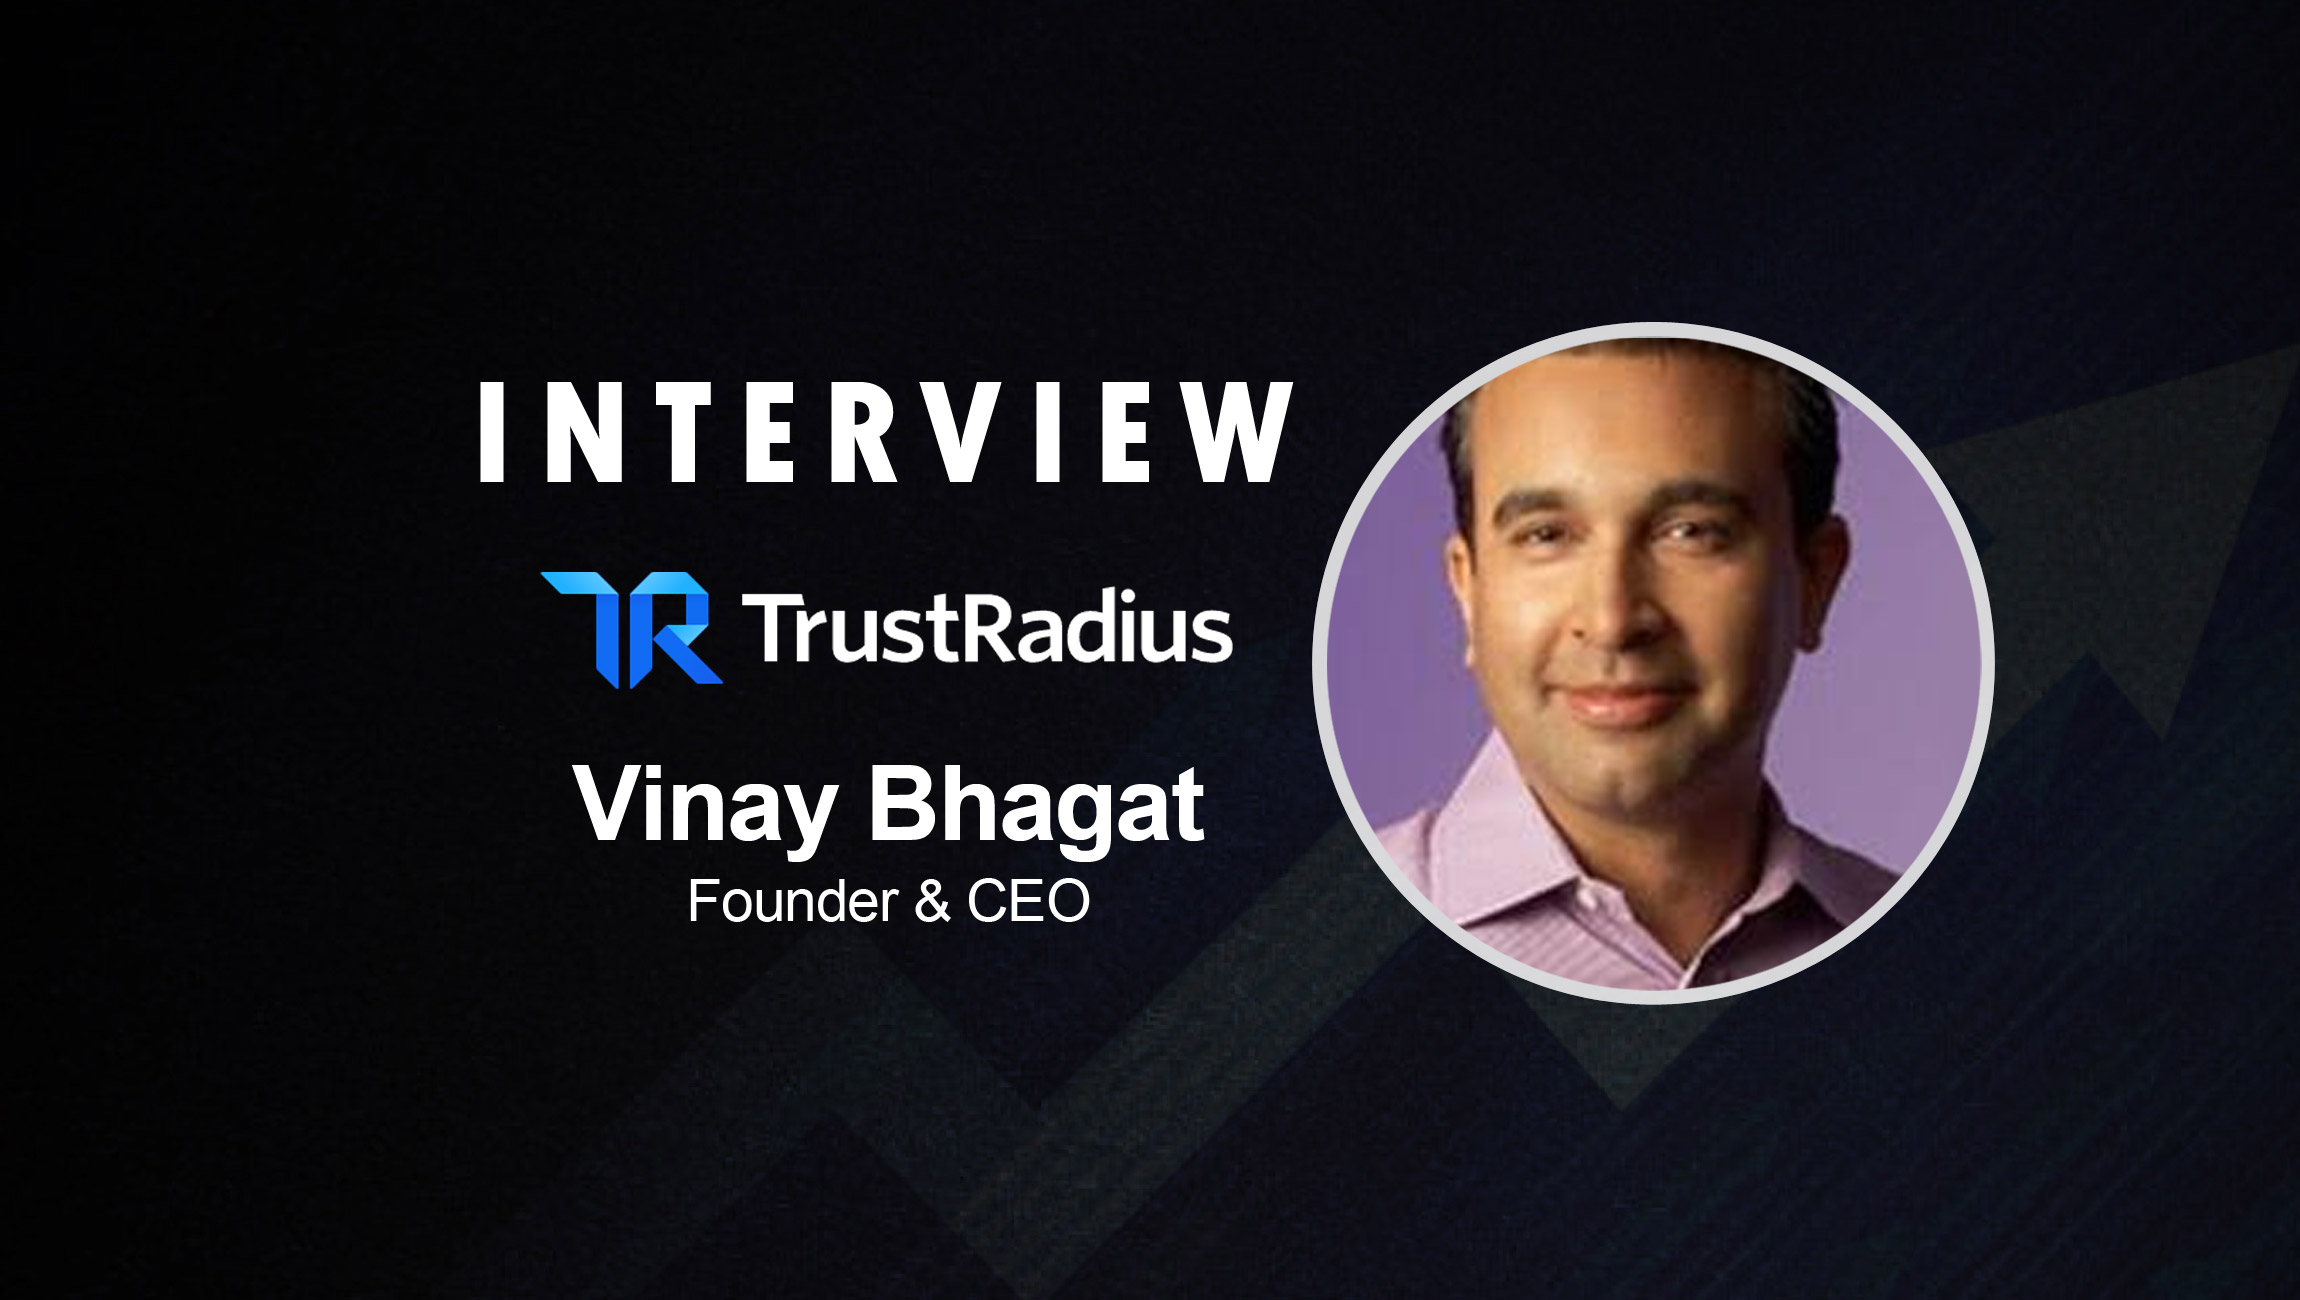 SalesTechStar Interview with Vinay Bhagat, CEO and Founder at TrustRadius